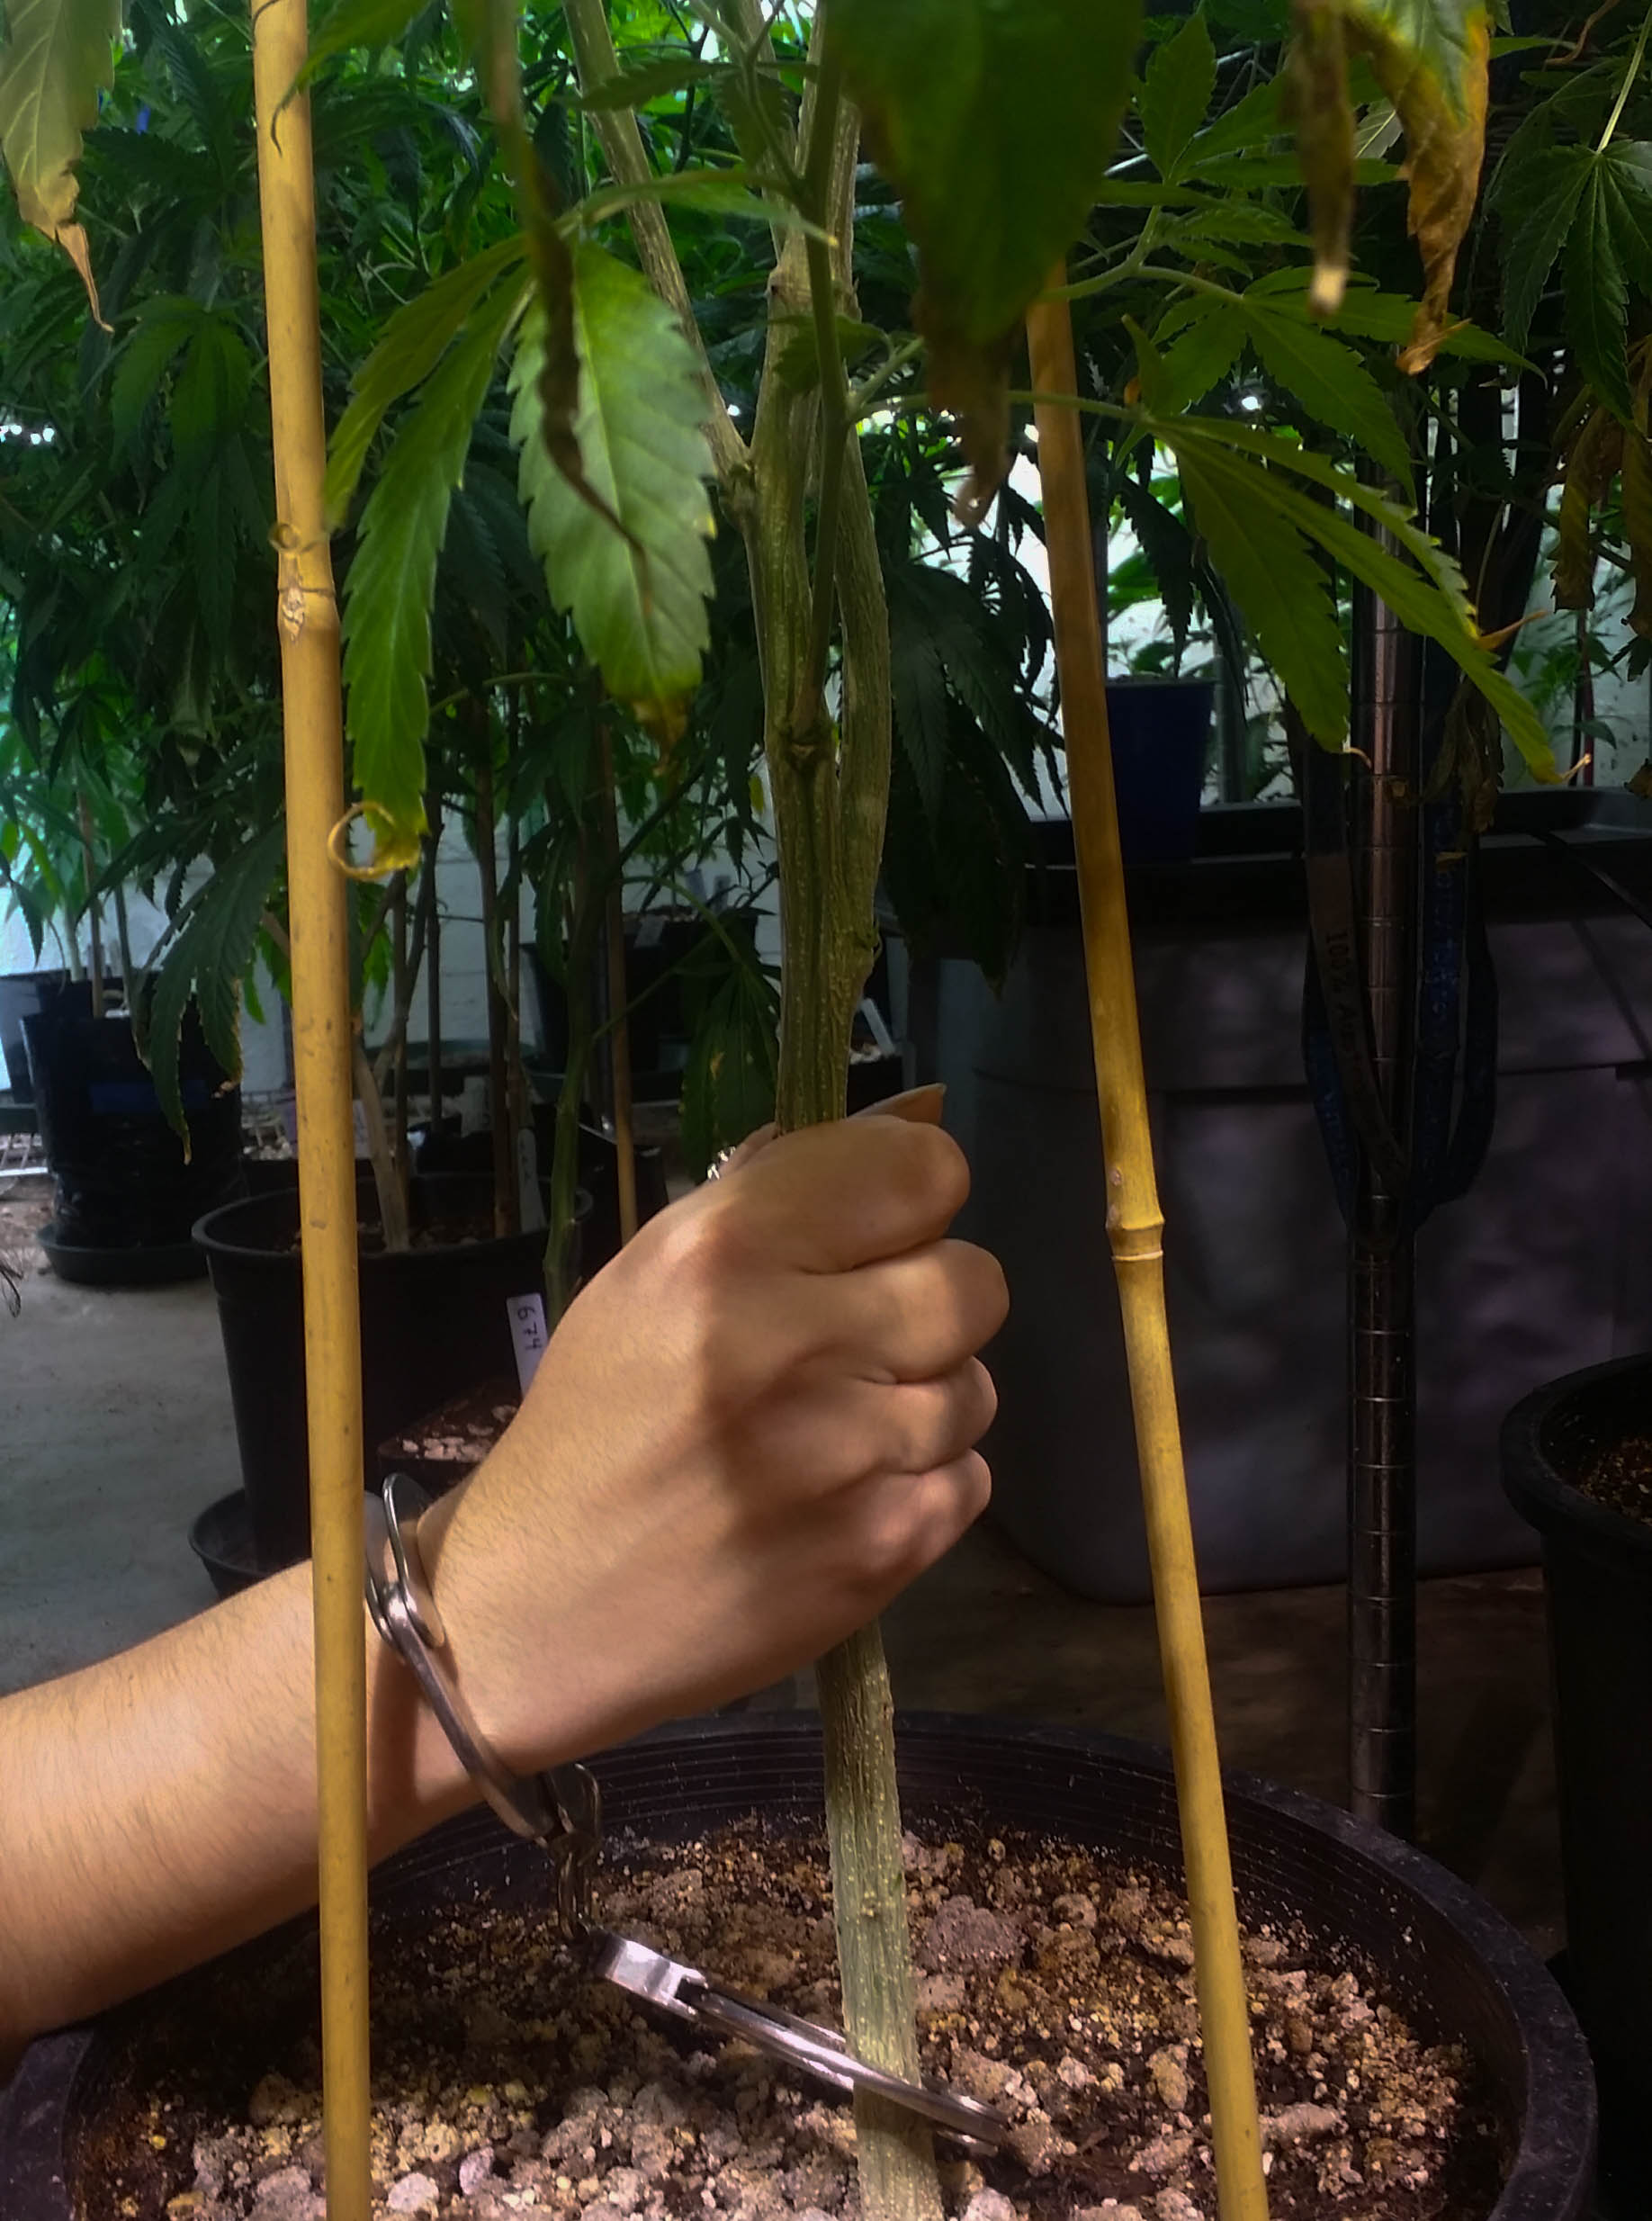 Hands cuffed to cannabis plant in protest